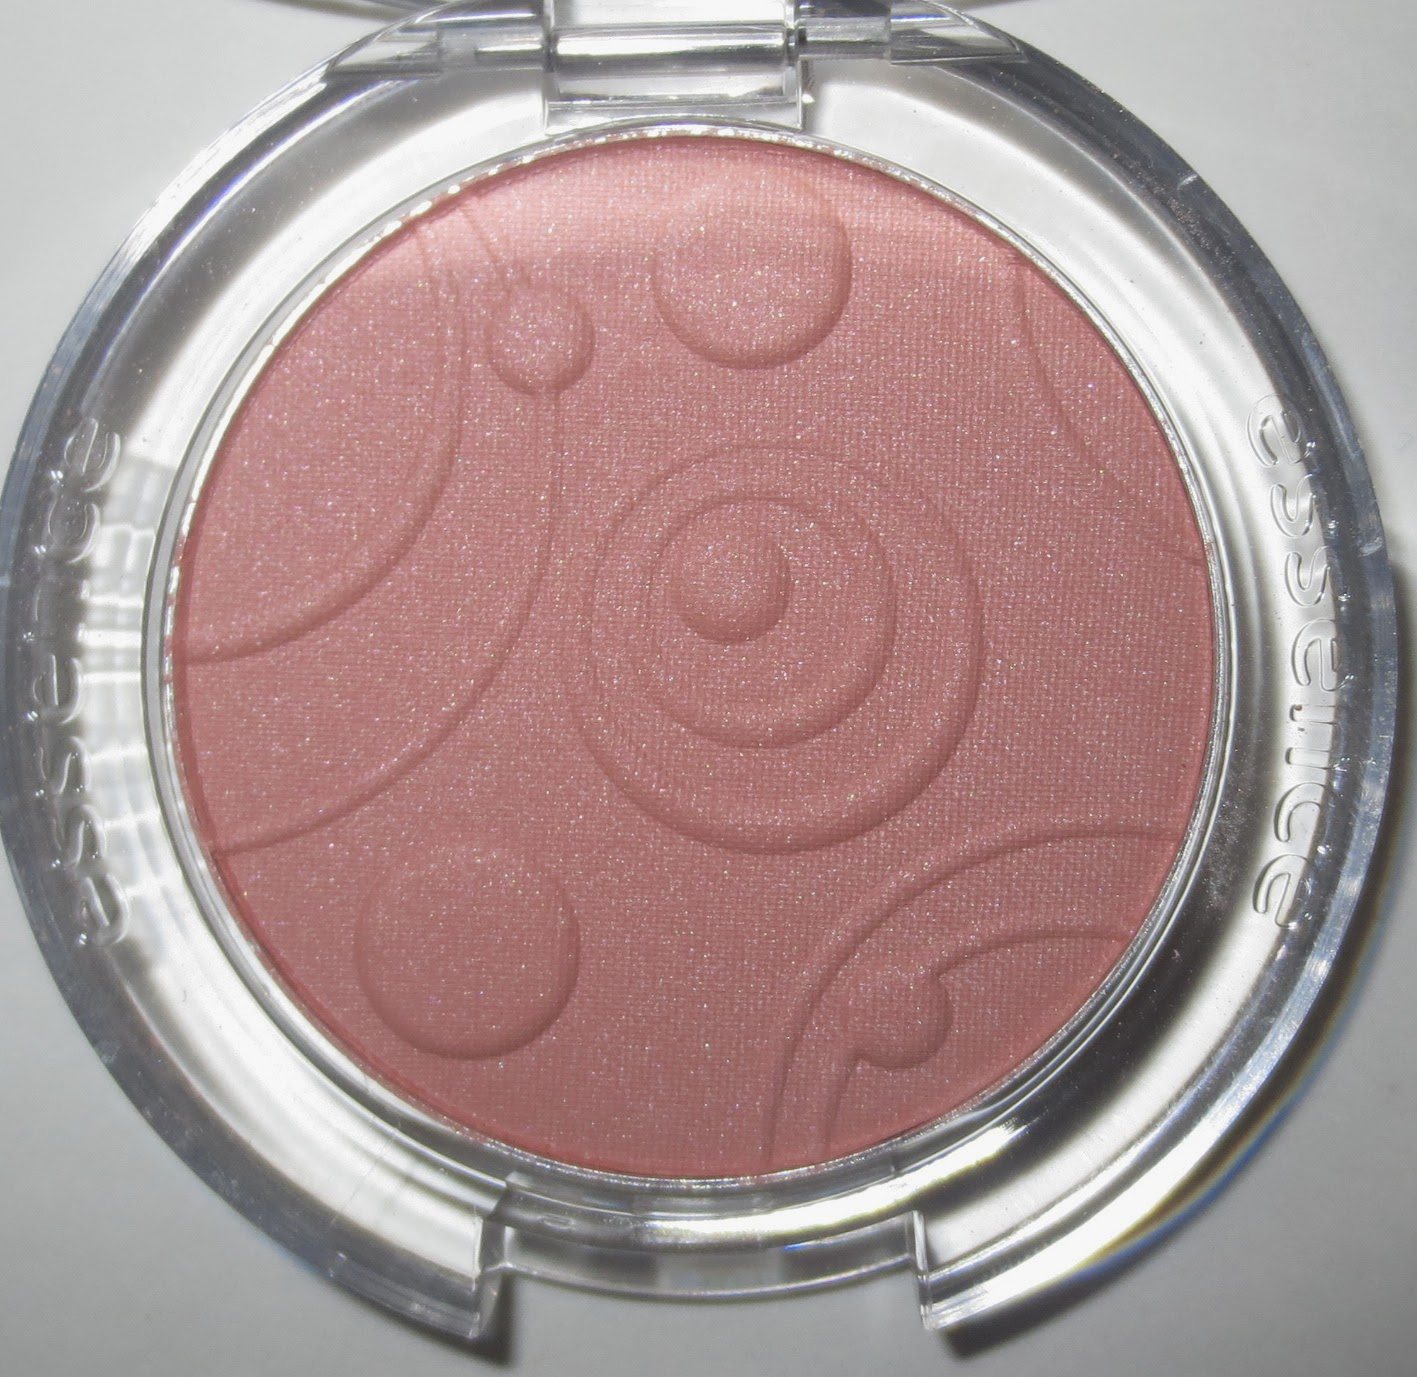 essence silky touch blush in 50 sweetheart